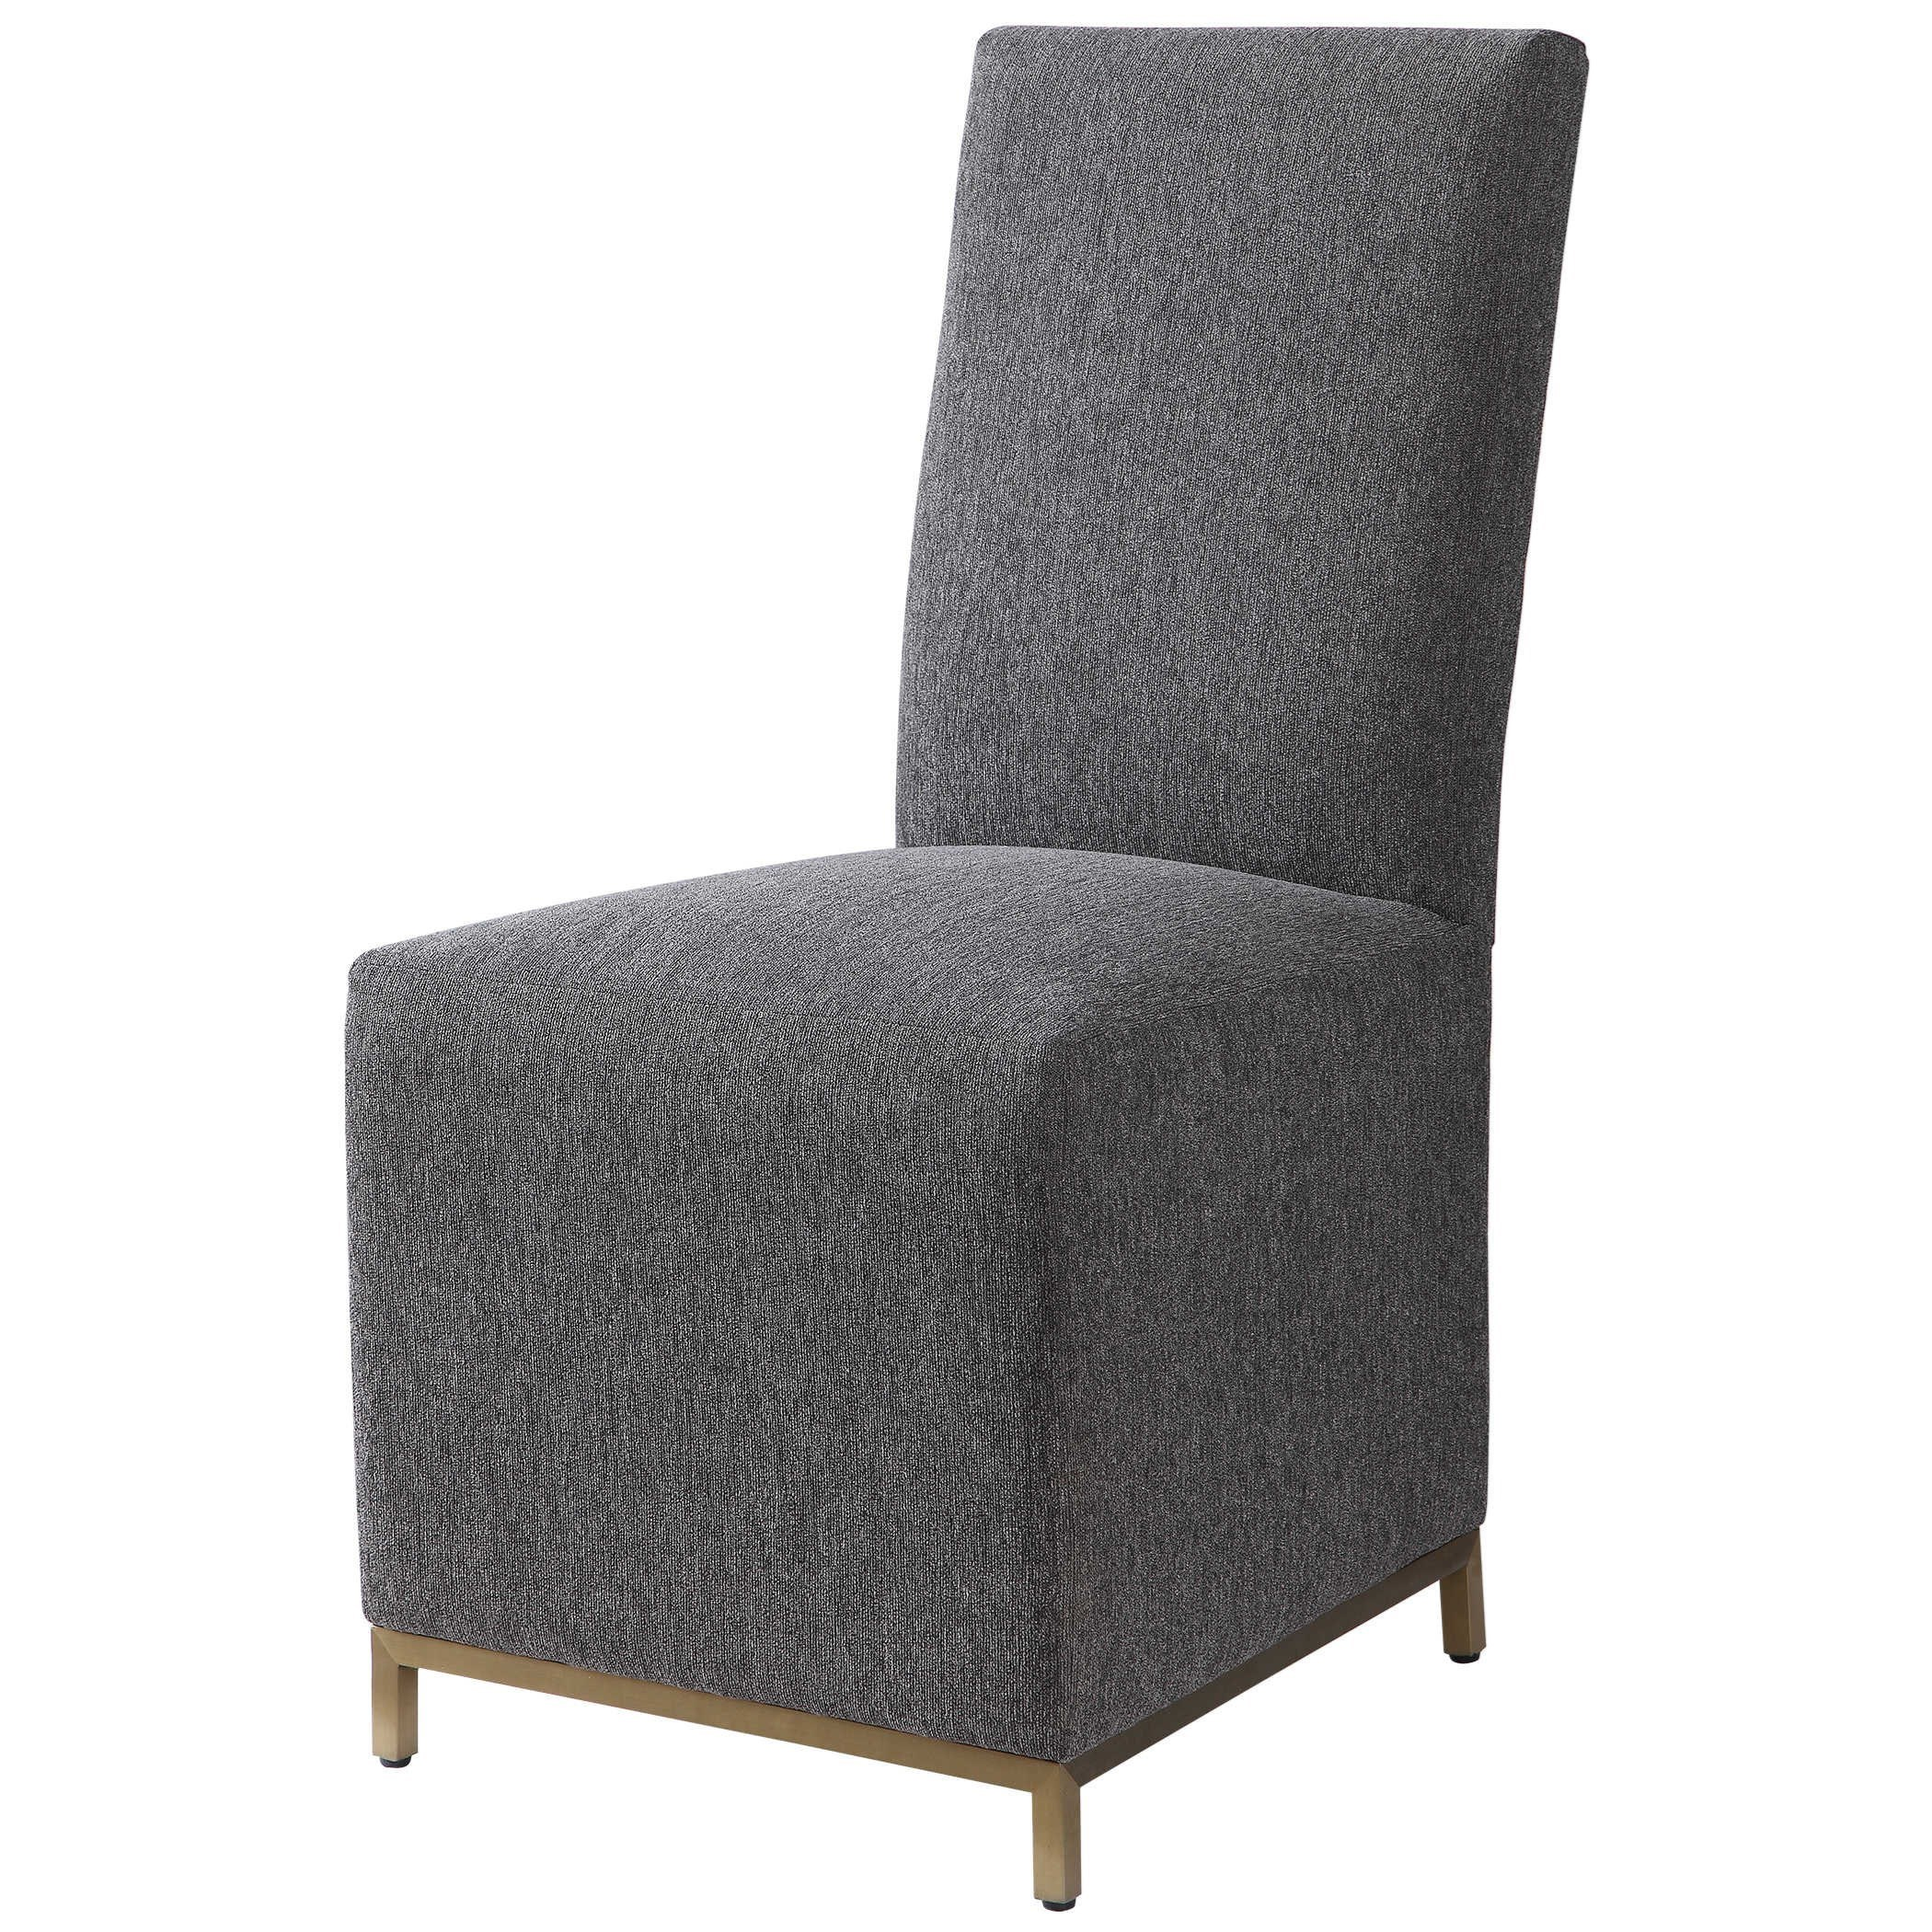 Accent Furniture Gerard Armless Charcoal Dining Chair by Uttermost at Furniture Superstore - Rochester, MN